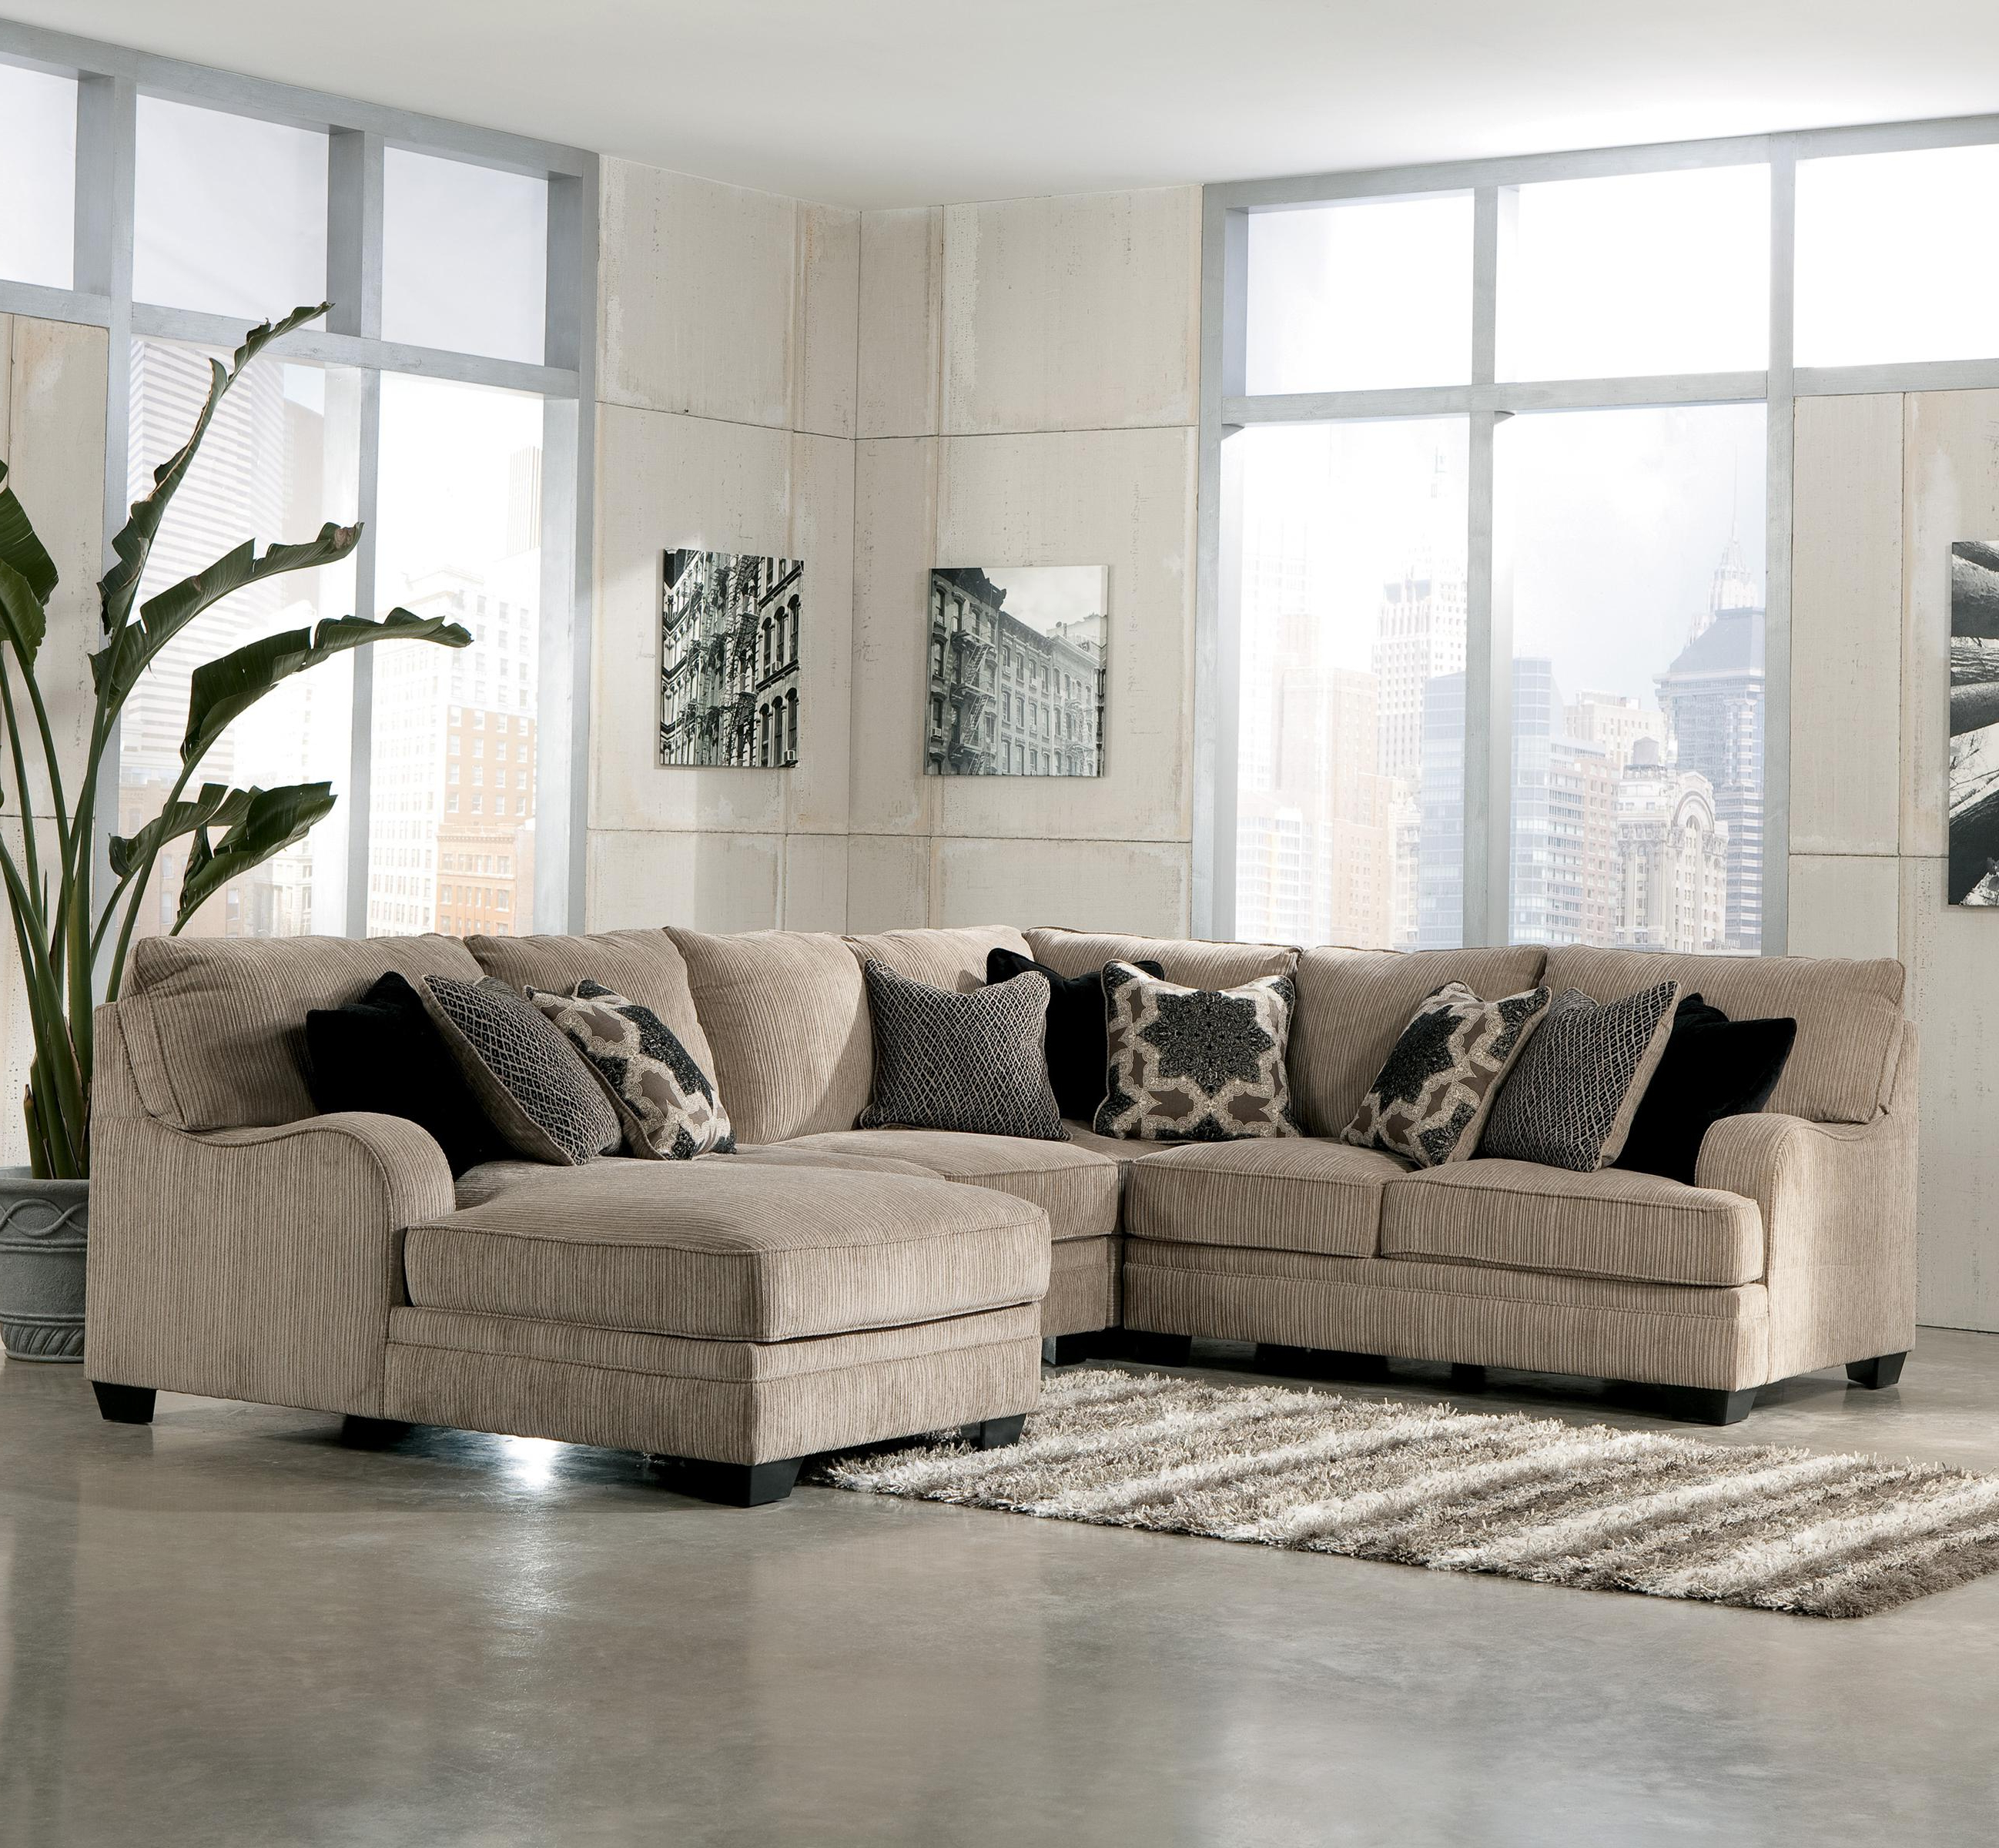 Gordon 3 Piece Sectionals With Raf Chaise With Regard To Famous Signature Designashley Katisha – Platinum 4 Piece Sectional Sofa (View 9 of 20)